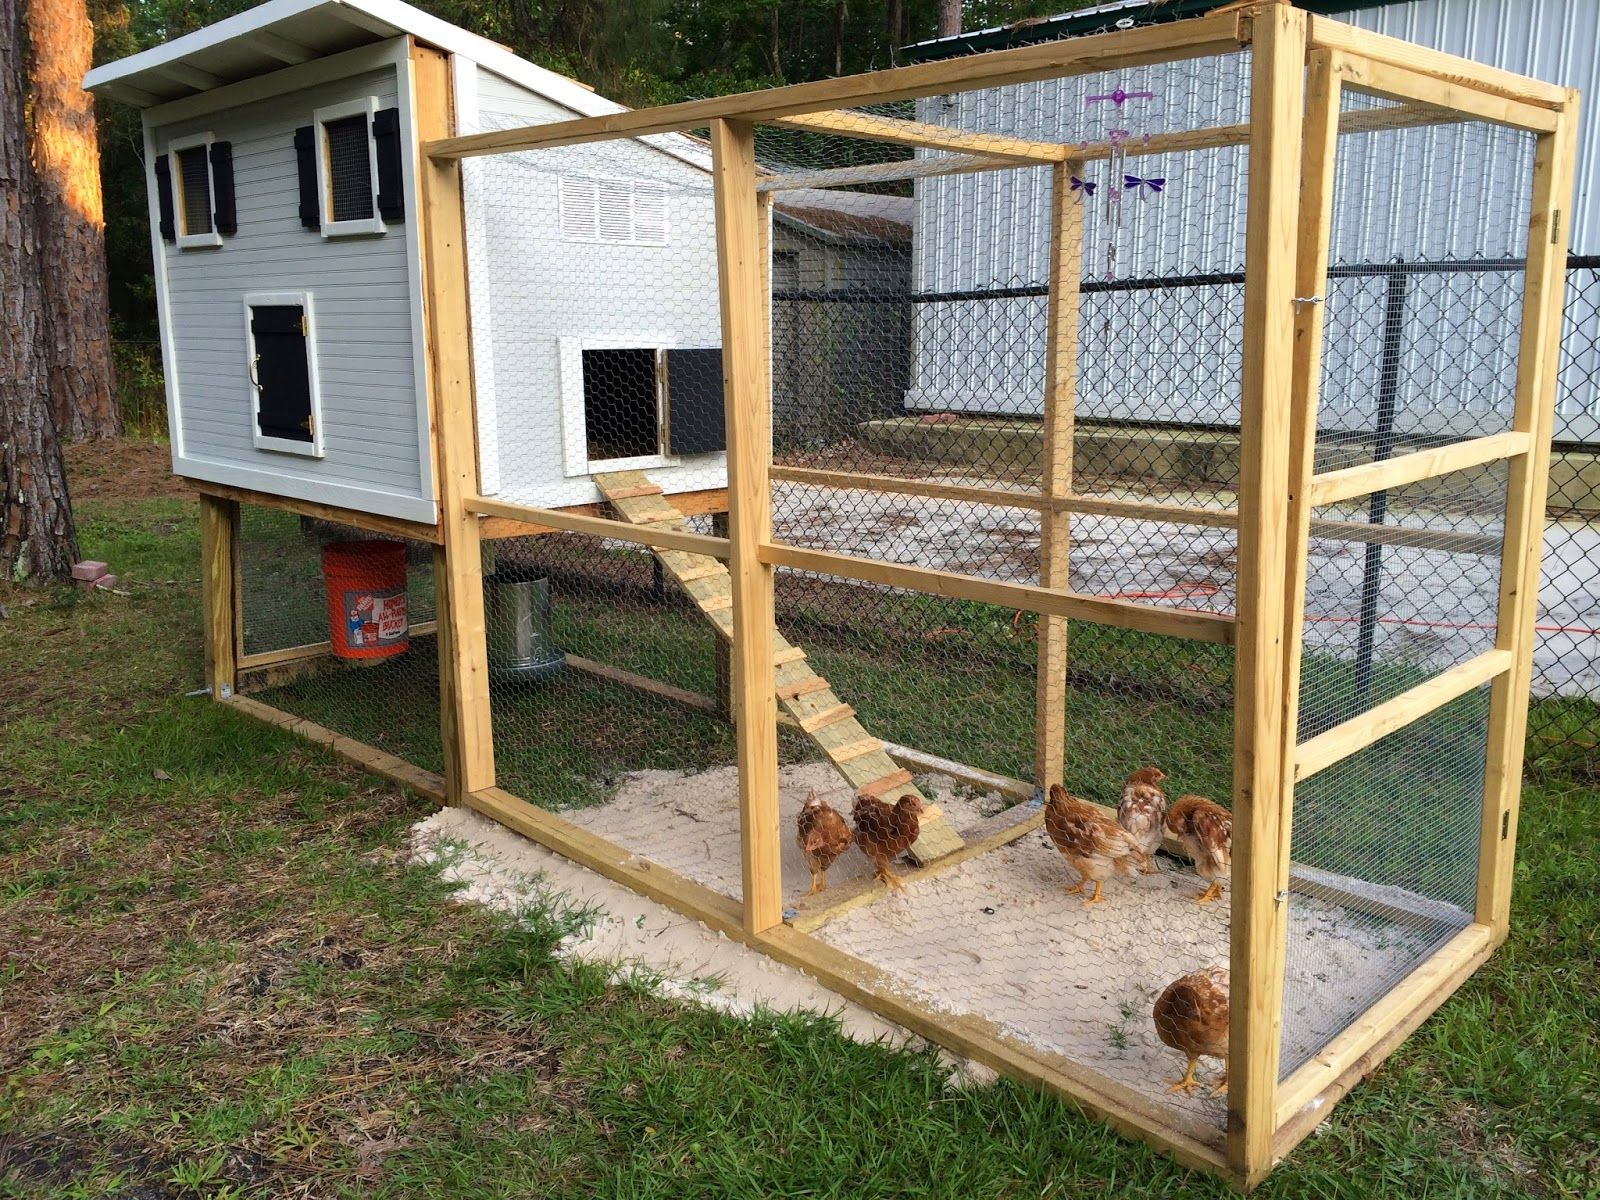 Diy chicken coop fabulously vintage diy pinterest for Small chicken coop blueprints free